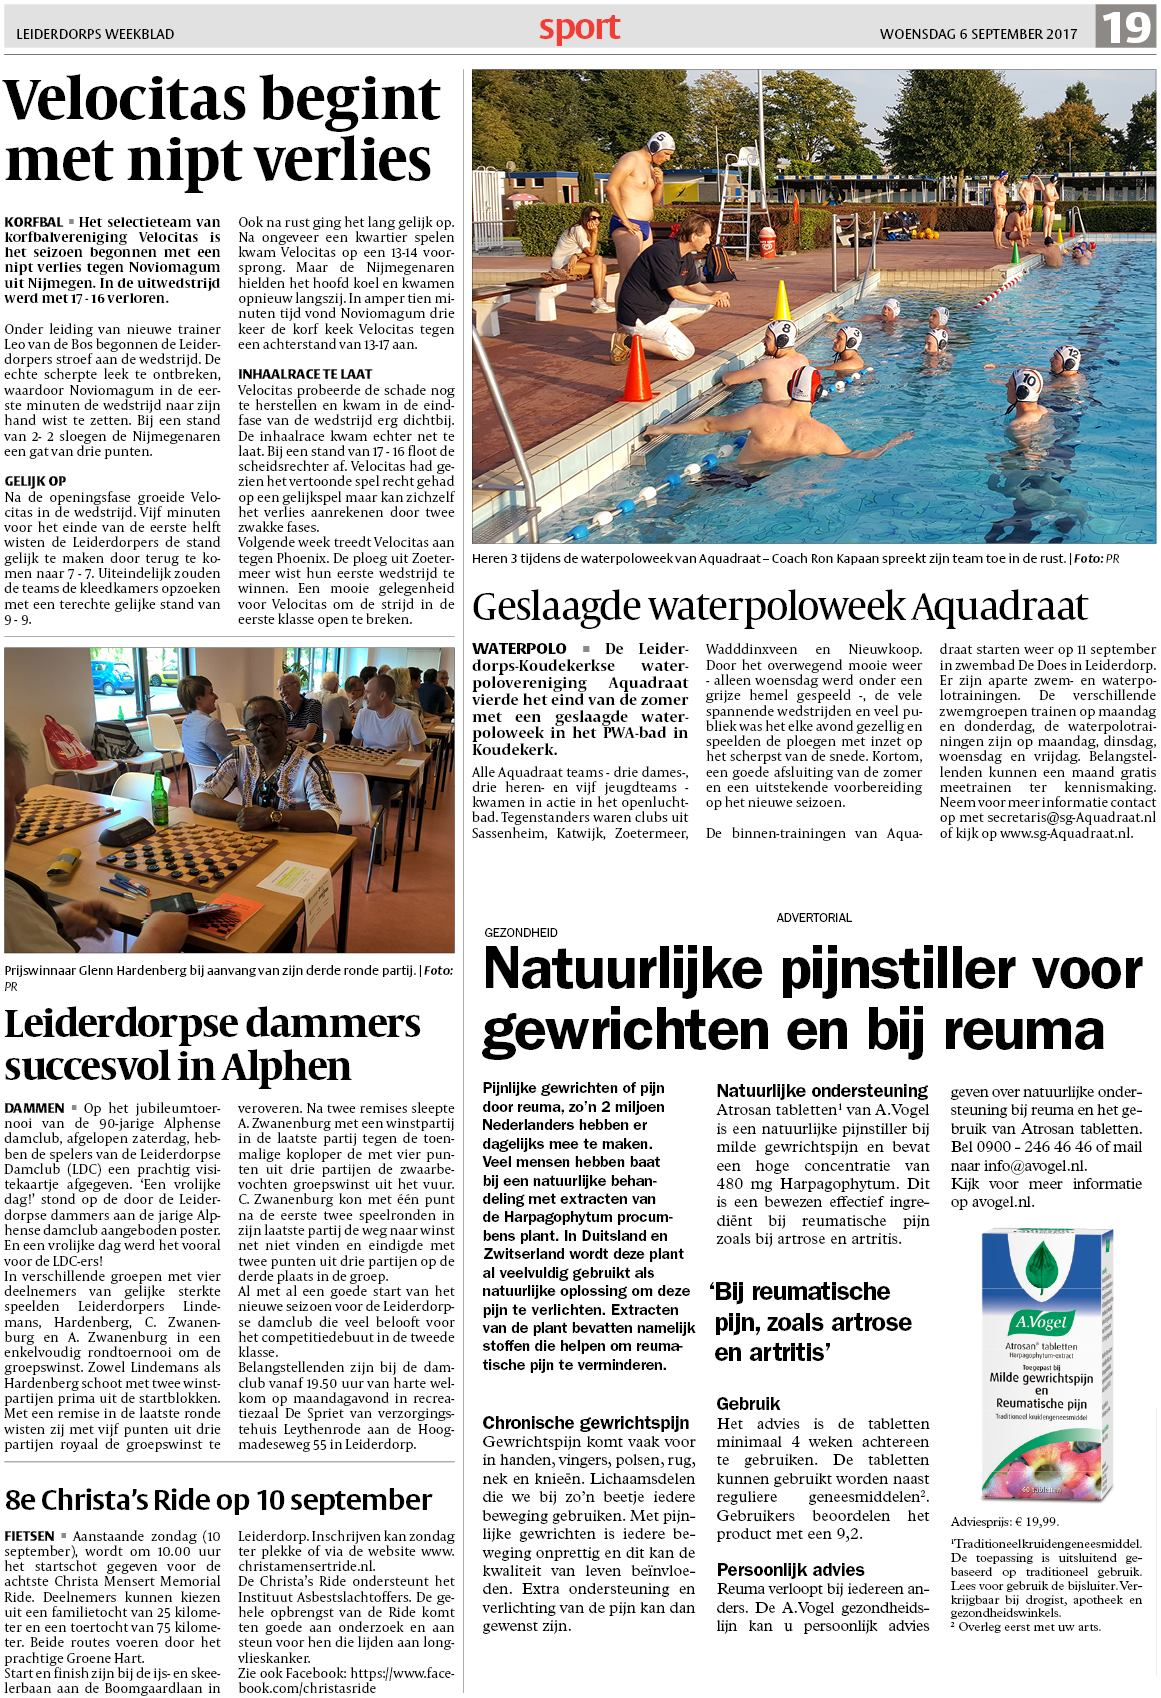 De Joffer Zwembad Leiderdorps Weekblad 6 September 2017